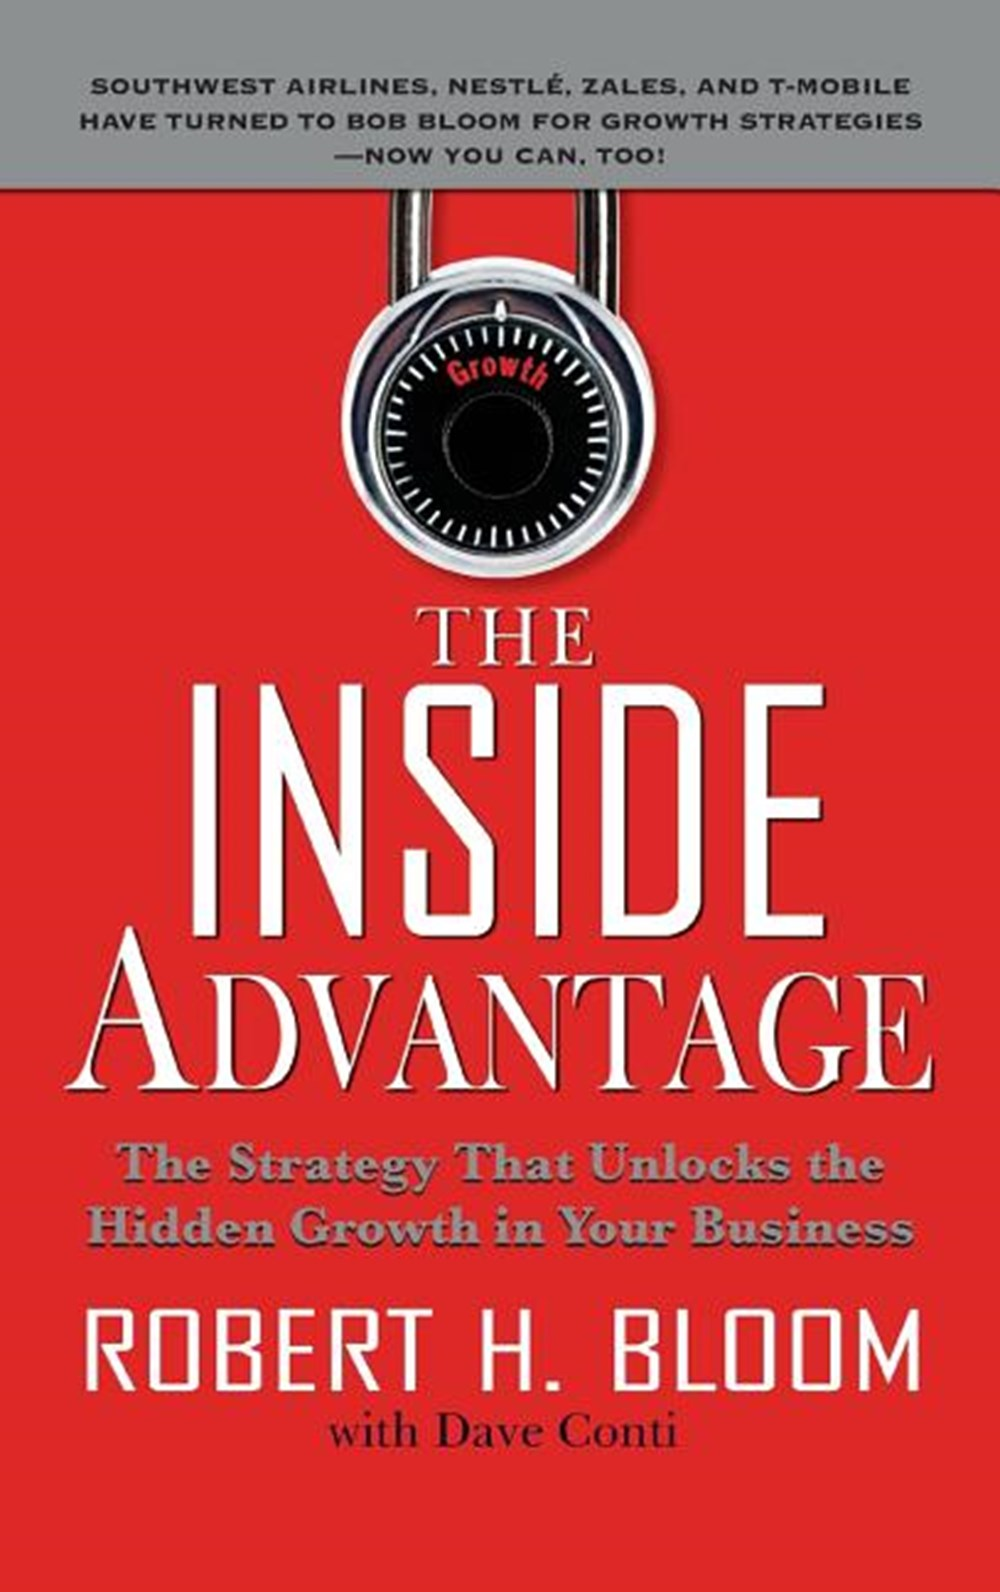 Inside Advantage The Strategy That Unlocks the Hidden Growth in Your Business